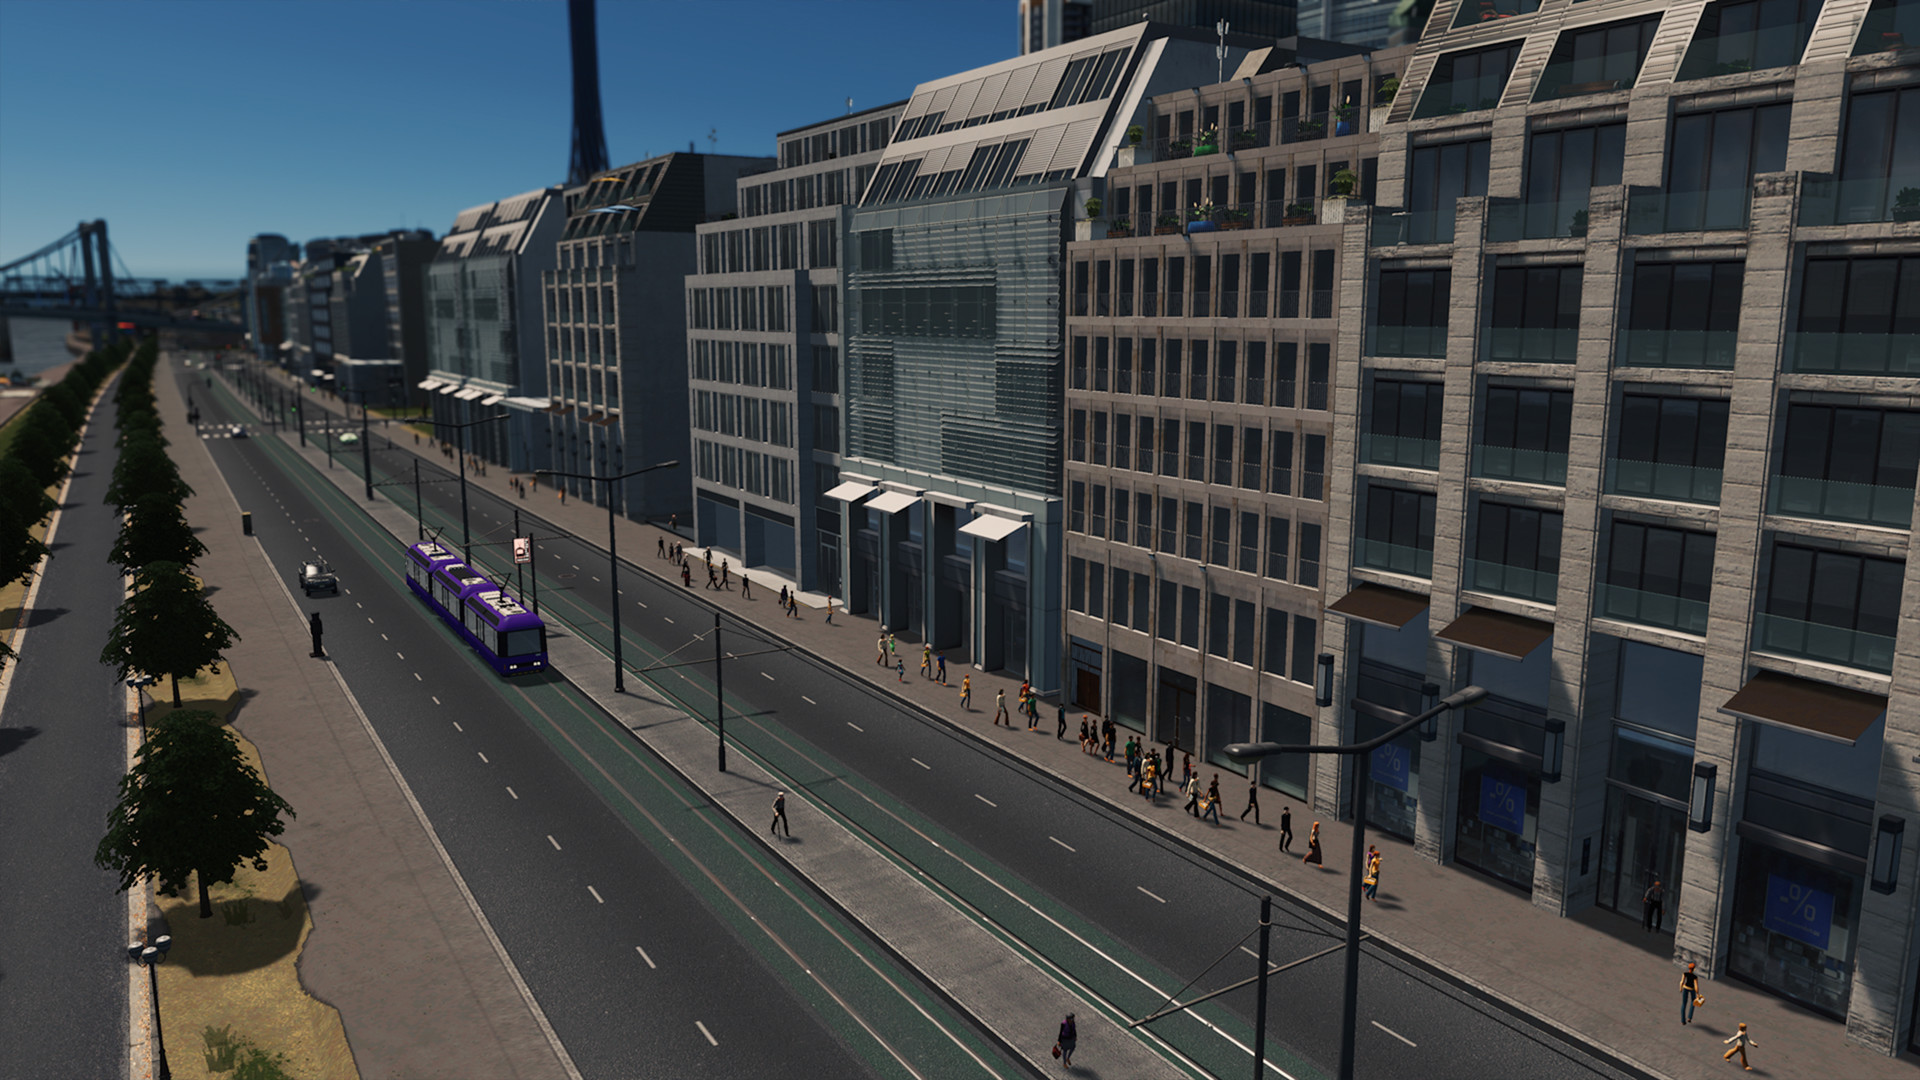 Cities: Skylines - Modern City Center Screenshot 1